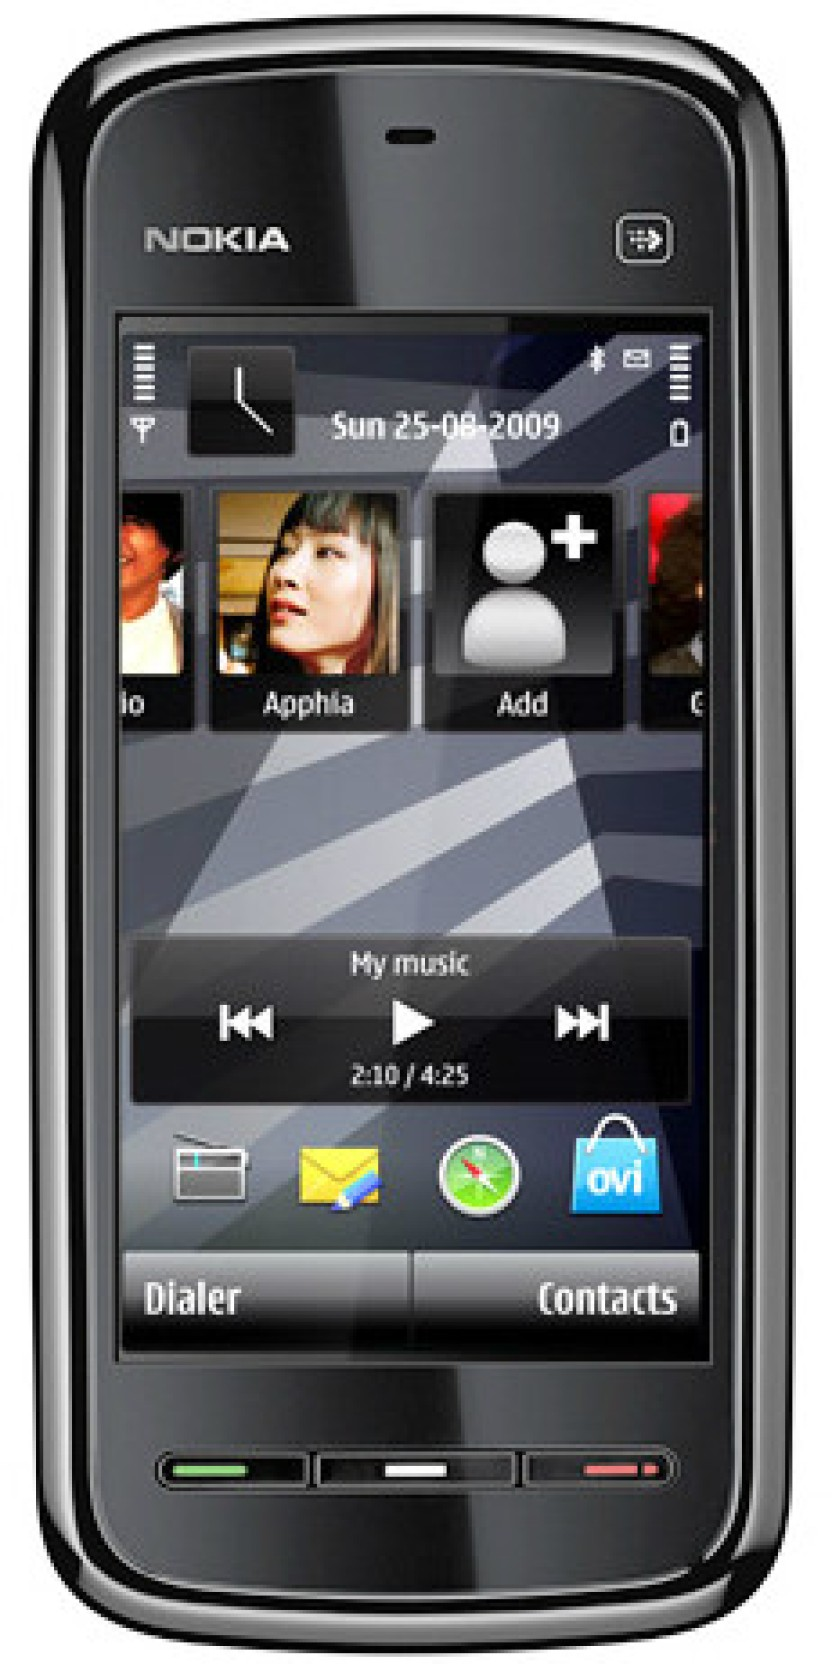 Nokia 5233 /Good Condition/Certified Pre Owned (6 month Warranty)